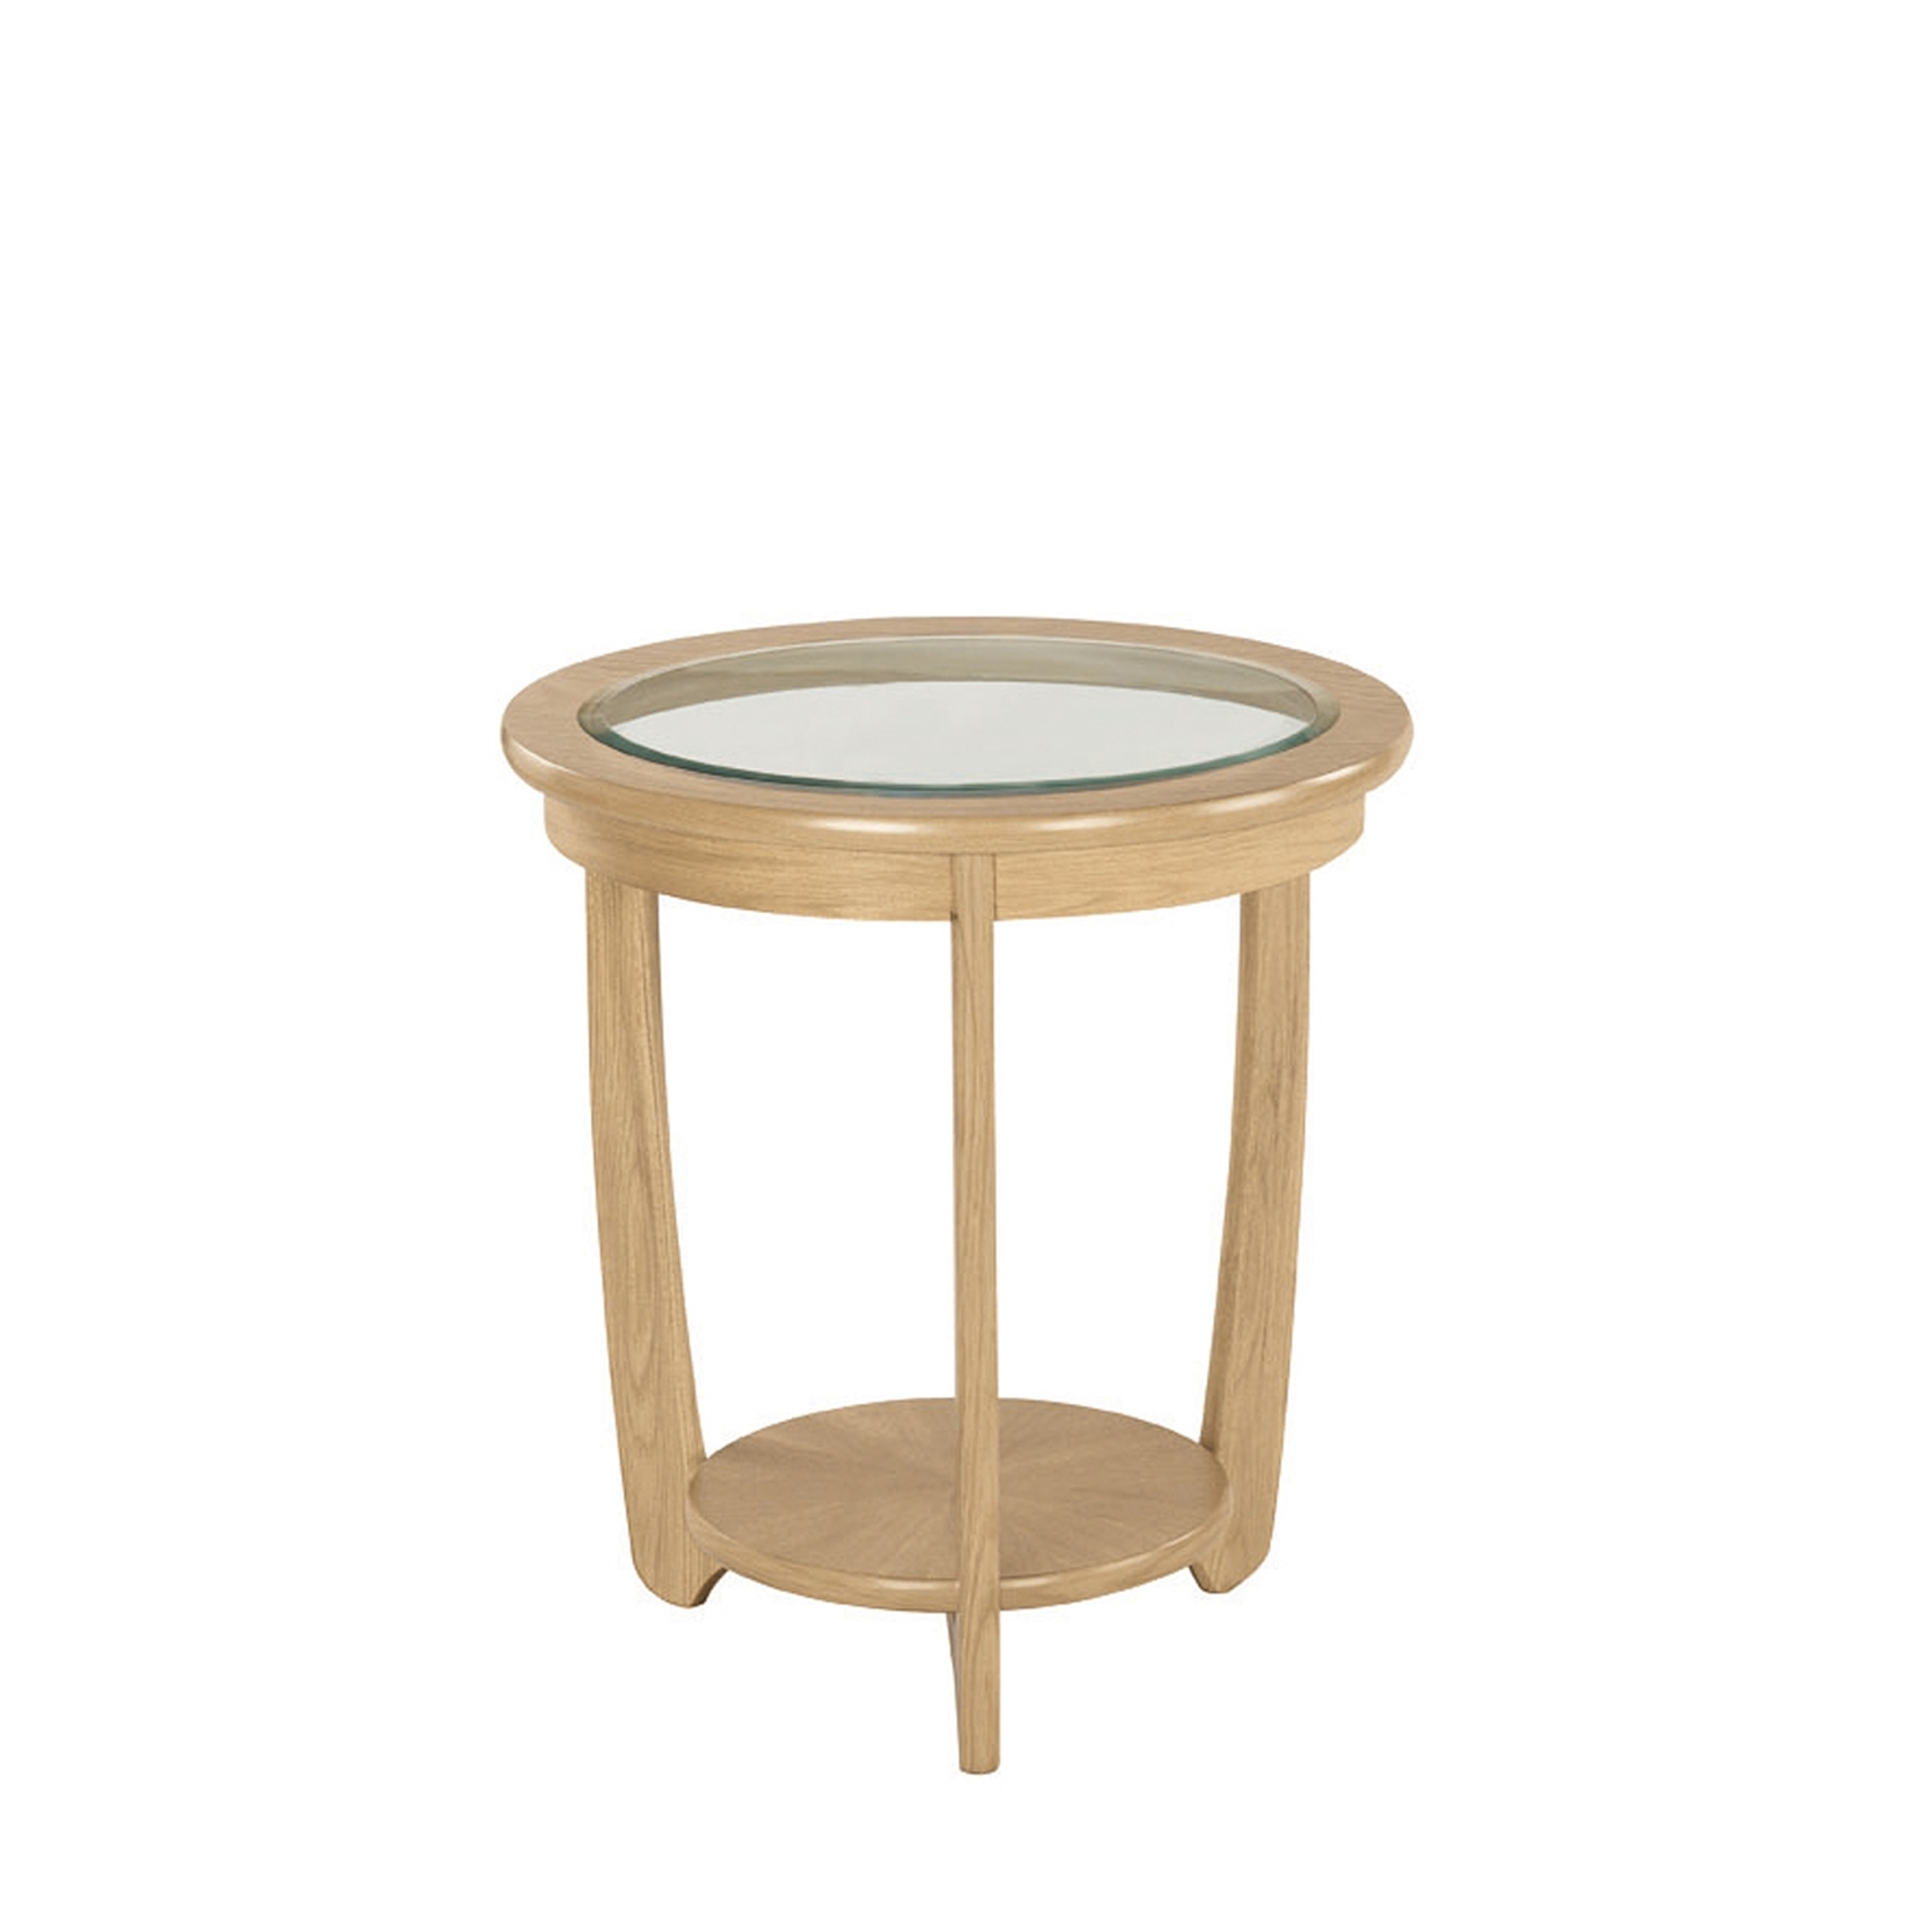 Shades Oak Nathan Shades Oak Glass Top Round Lamp Table Side Tables